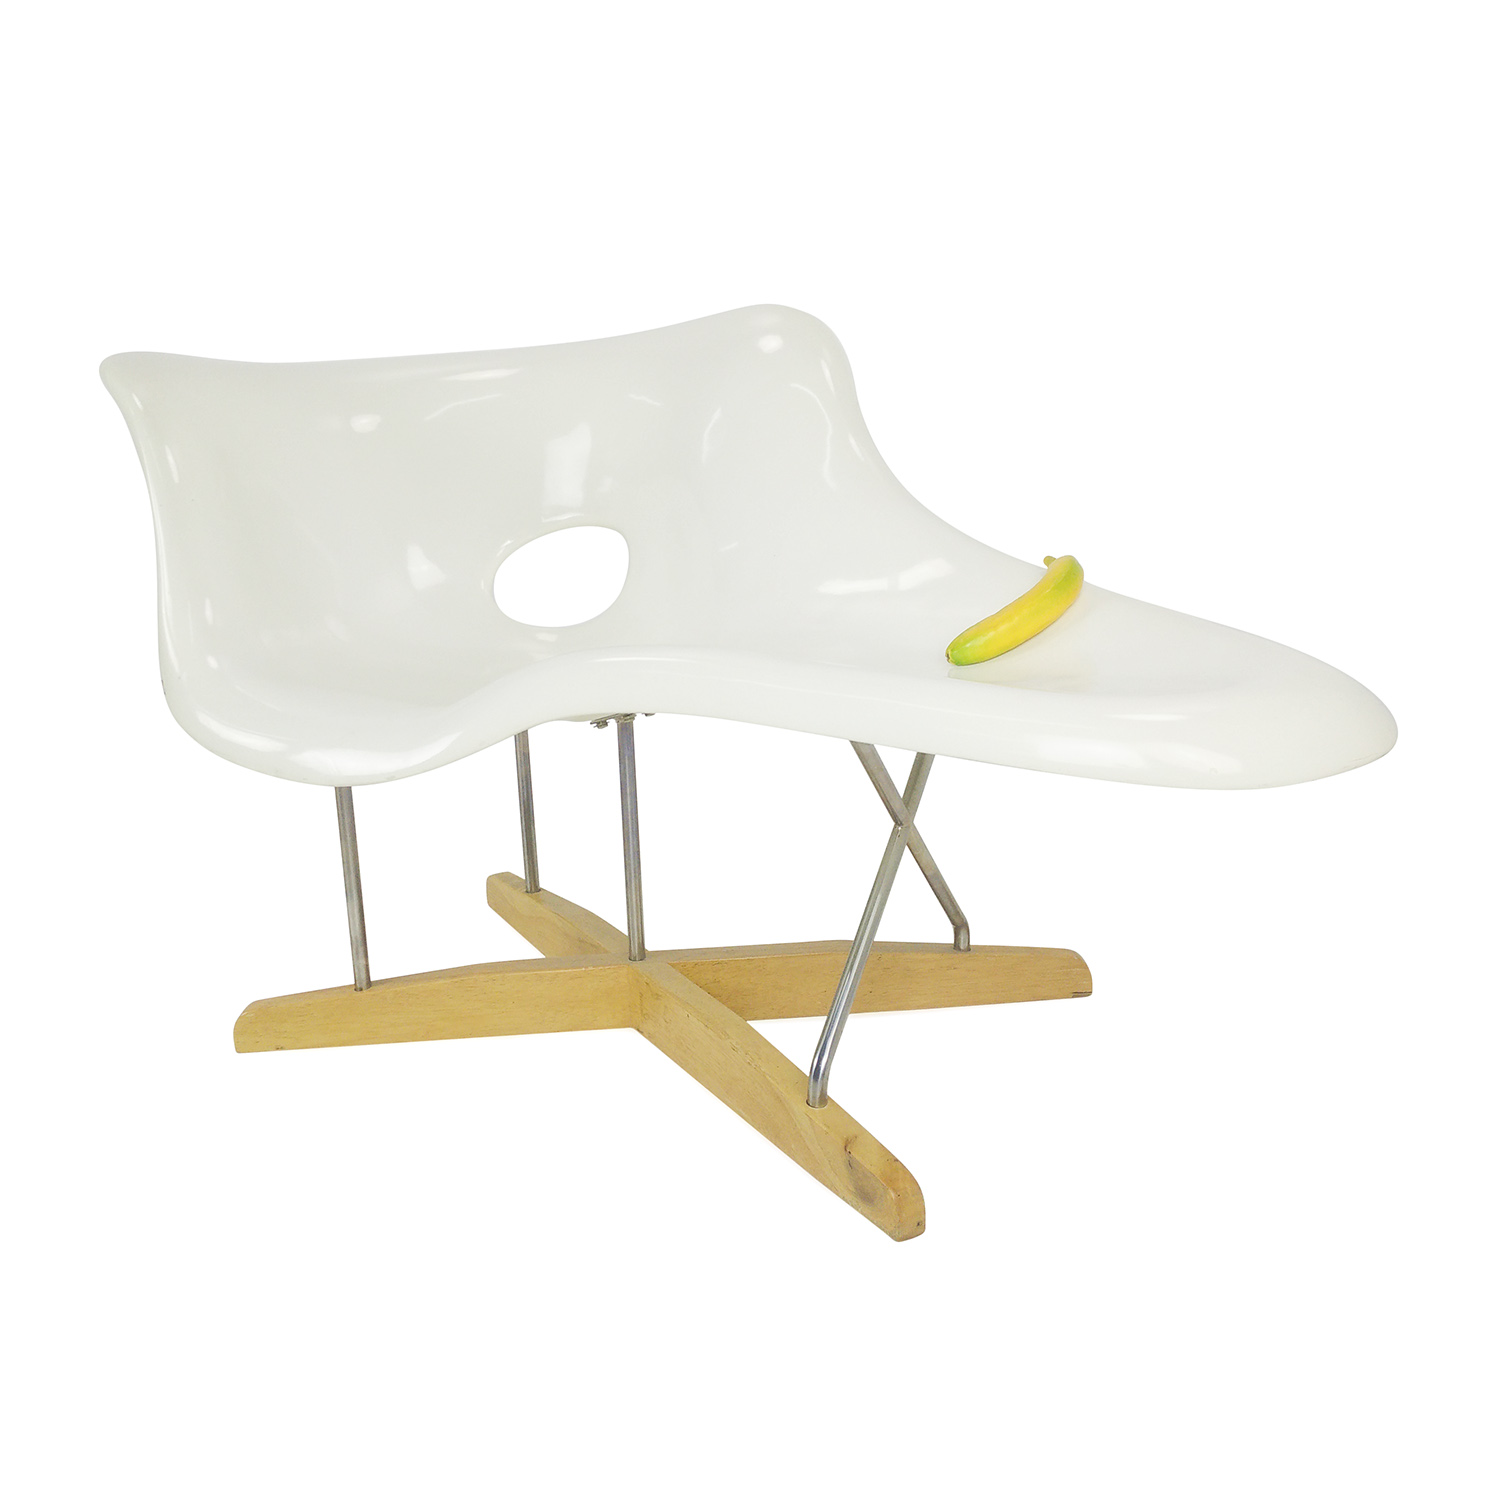 63 off eames replica of la chaise la chaise replica